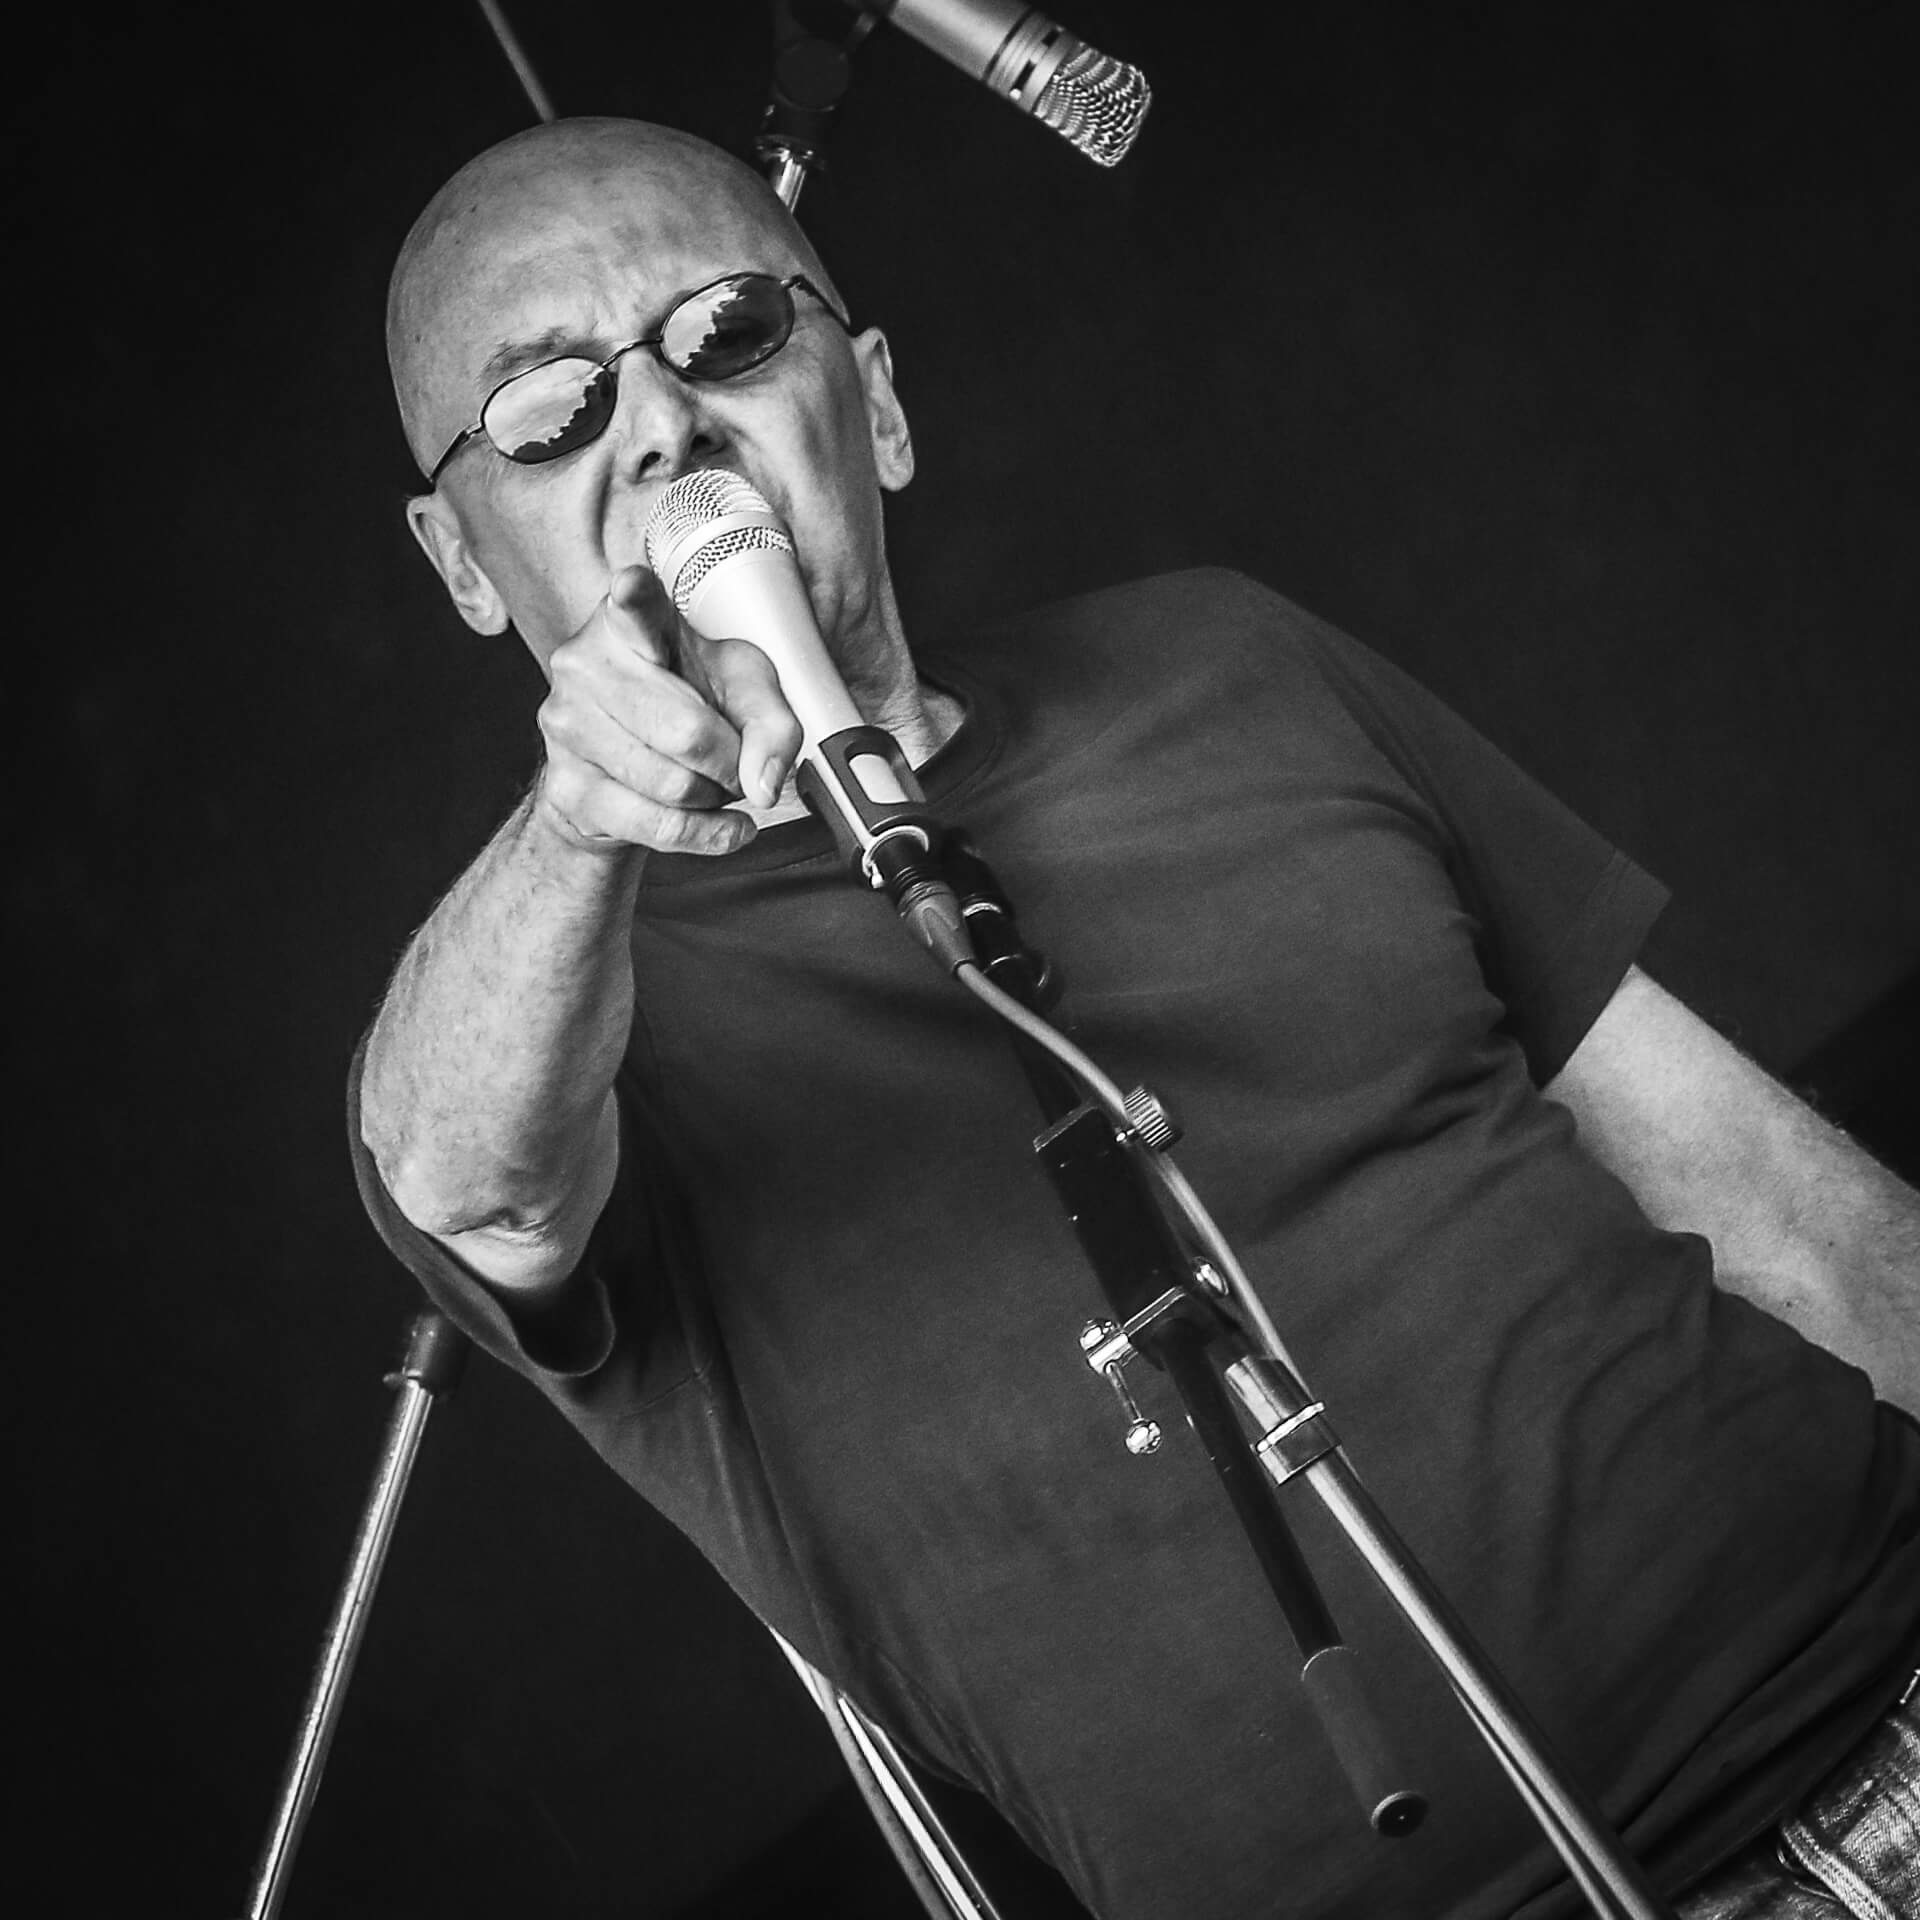 The frontman of a band playing on the acoustic stage at Mappfest, Malvern is seen pointing at the camera in this black and white image whilst on stage. The image, taken at a 45 degree angle, shows him from the waist up, he wears sunglasses and has a bald head.